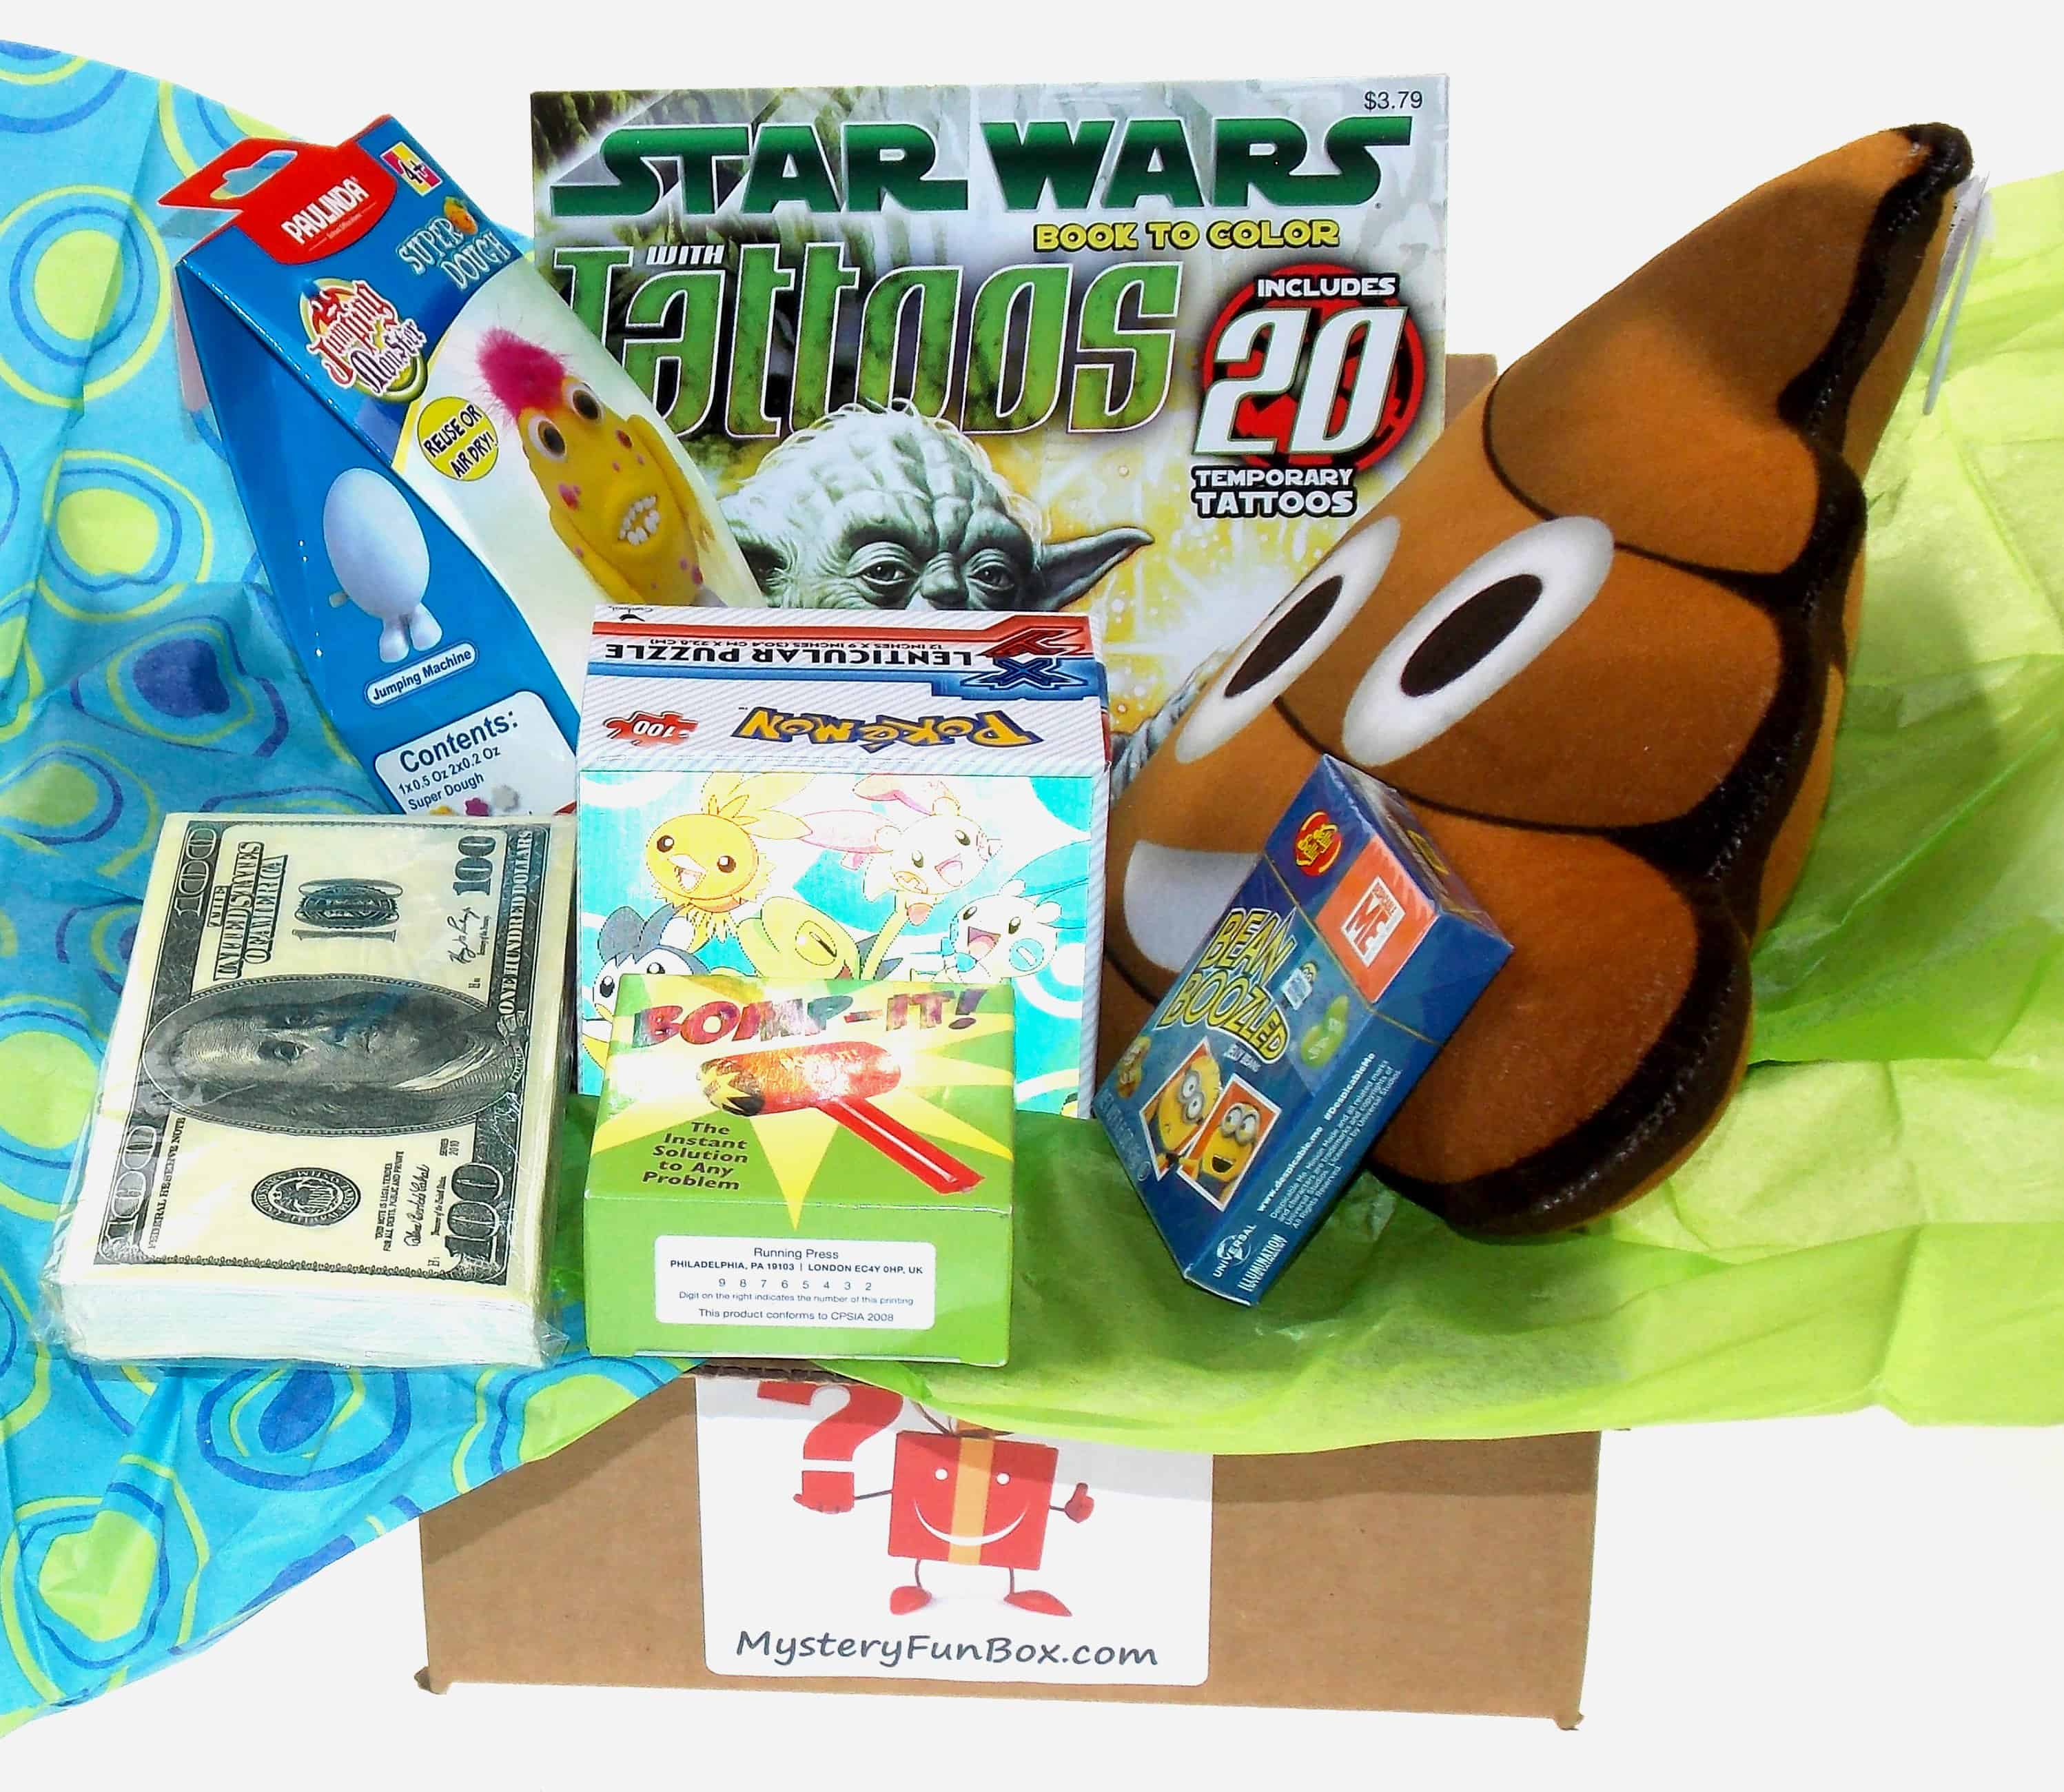 Boy's Mystery Fun Box